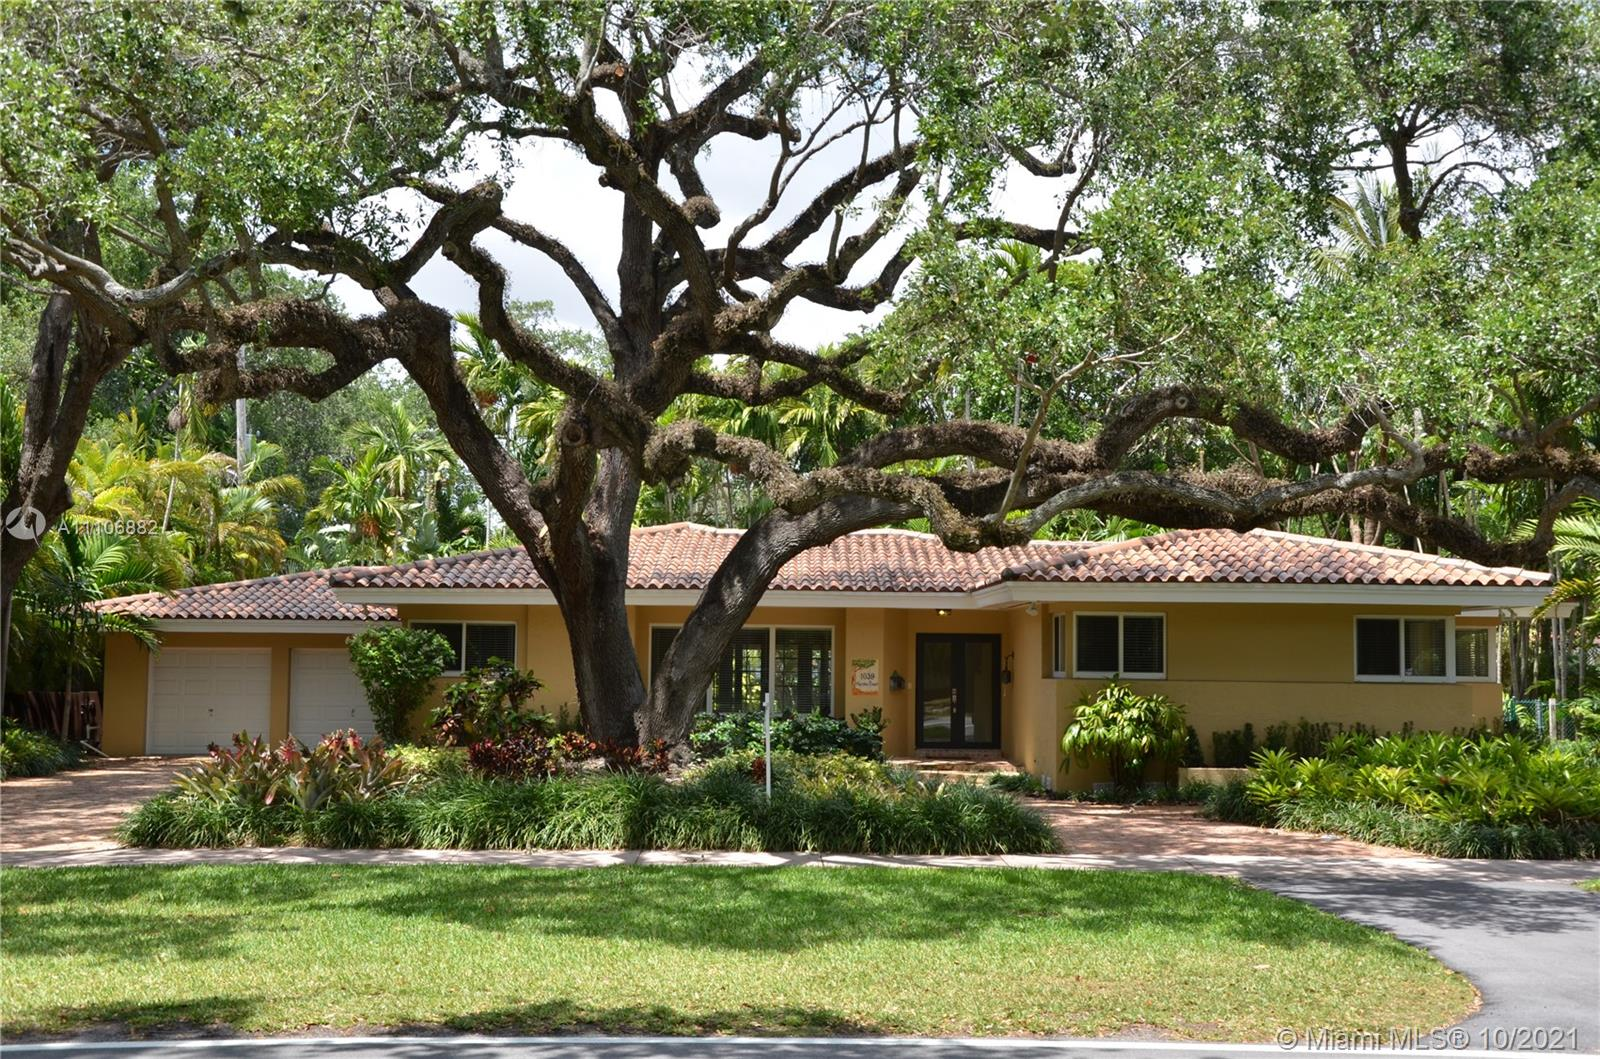 South Miami - 1039 Hardee Rd, Coral Gables, FL 33146